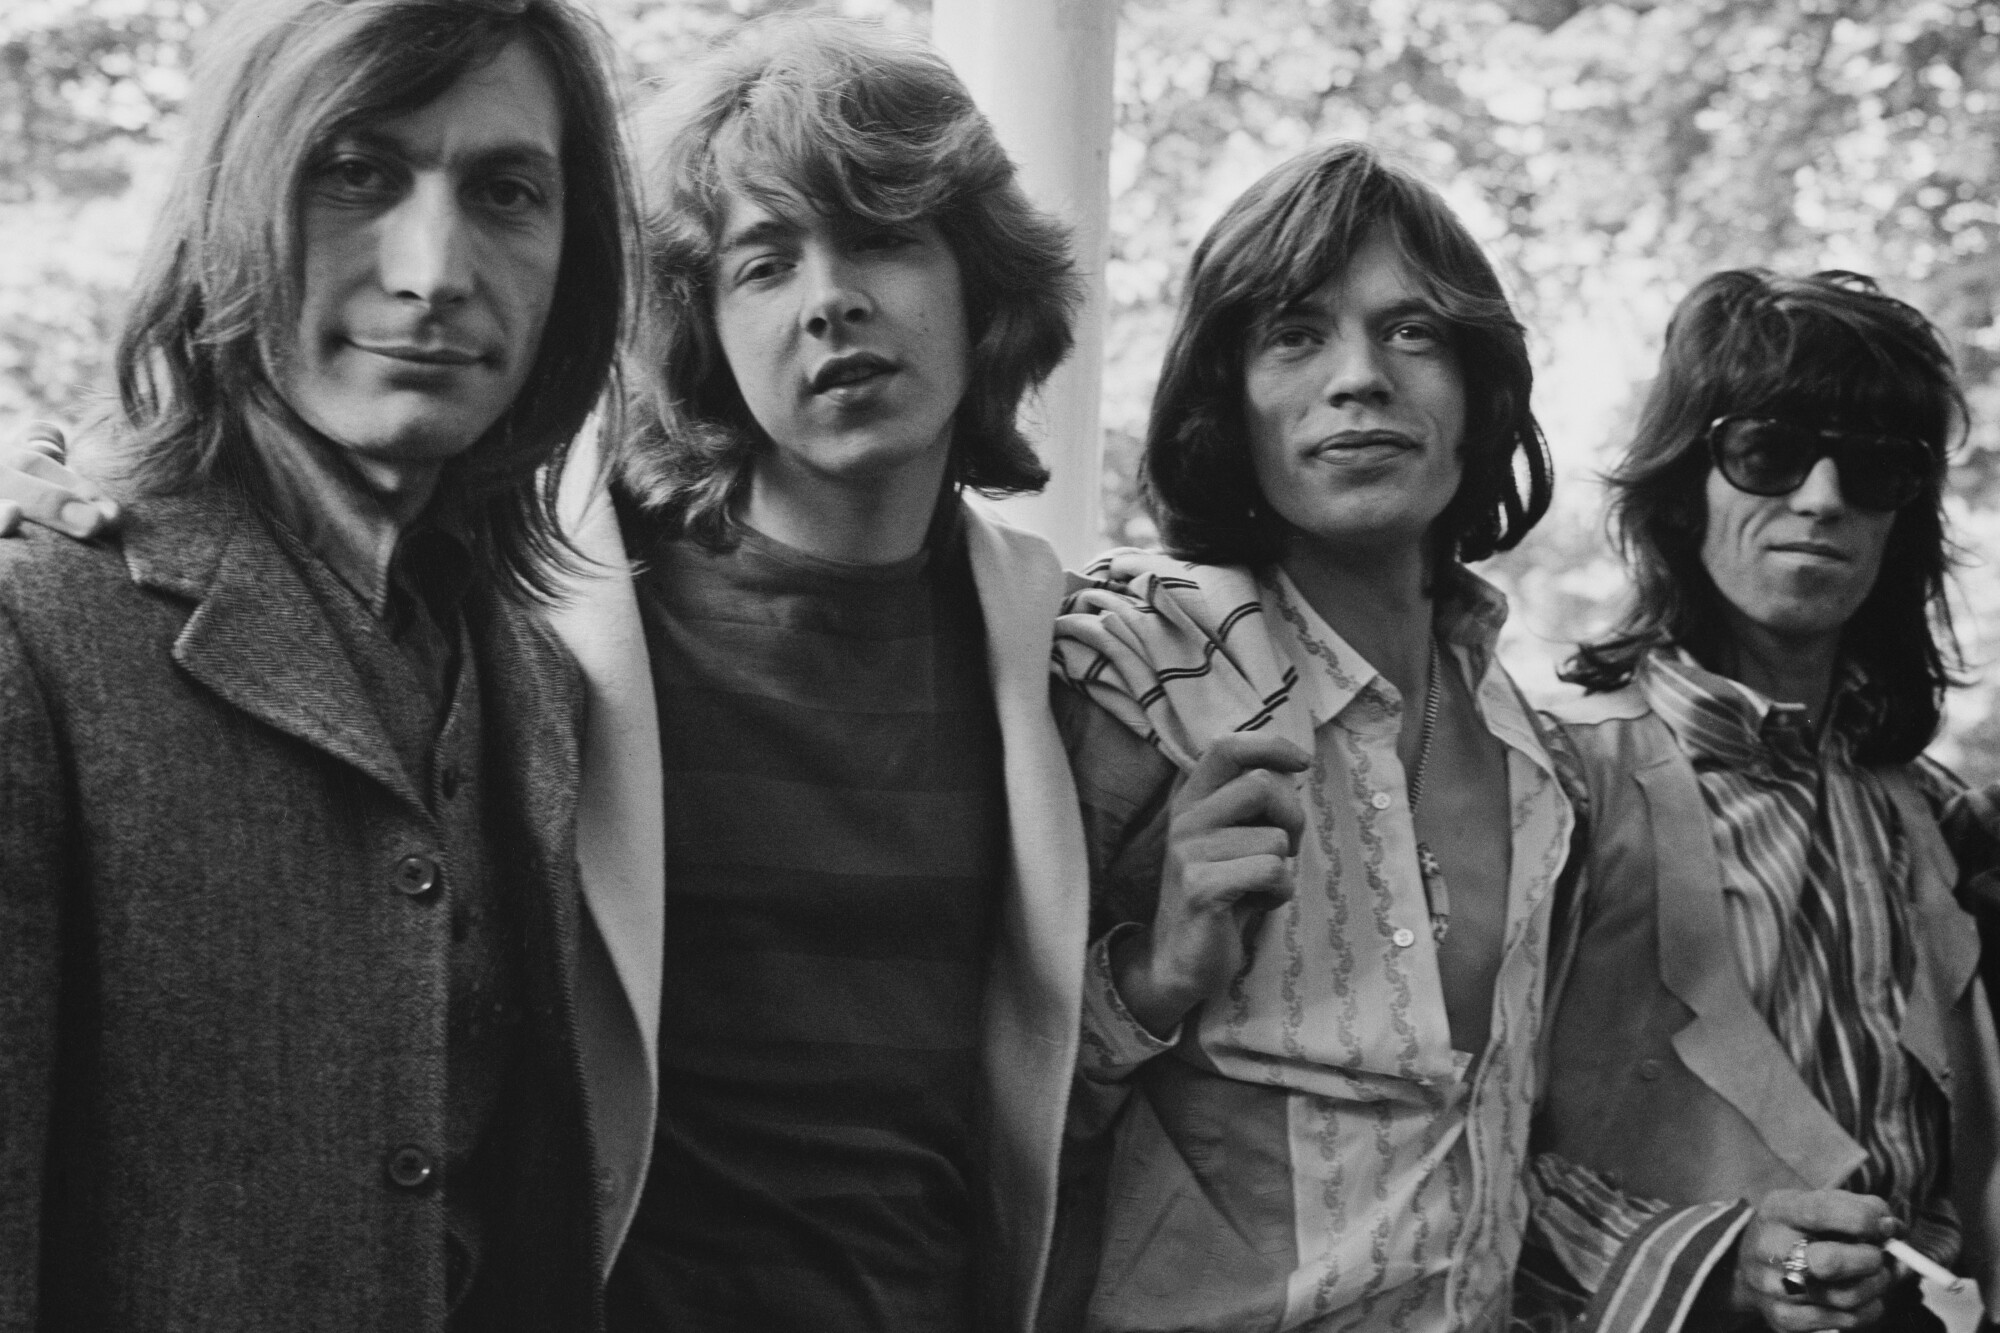 The Rolling Stones in Hyde Park, London, in 1969: Charlie Watts, Mick Taylor, Mick Jagger, Keith Richards.